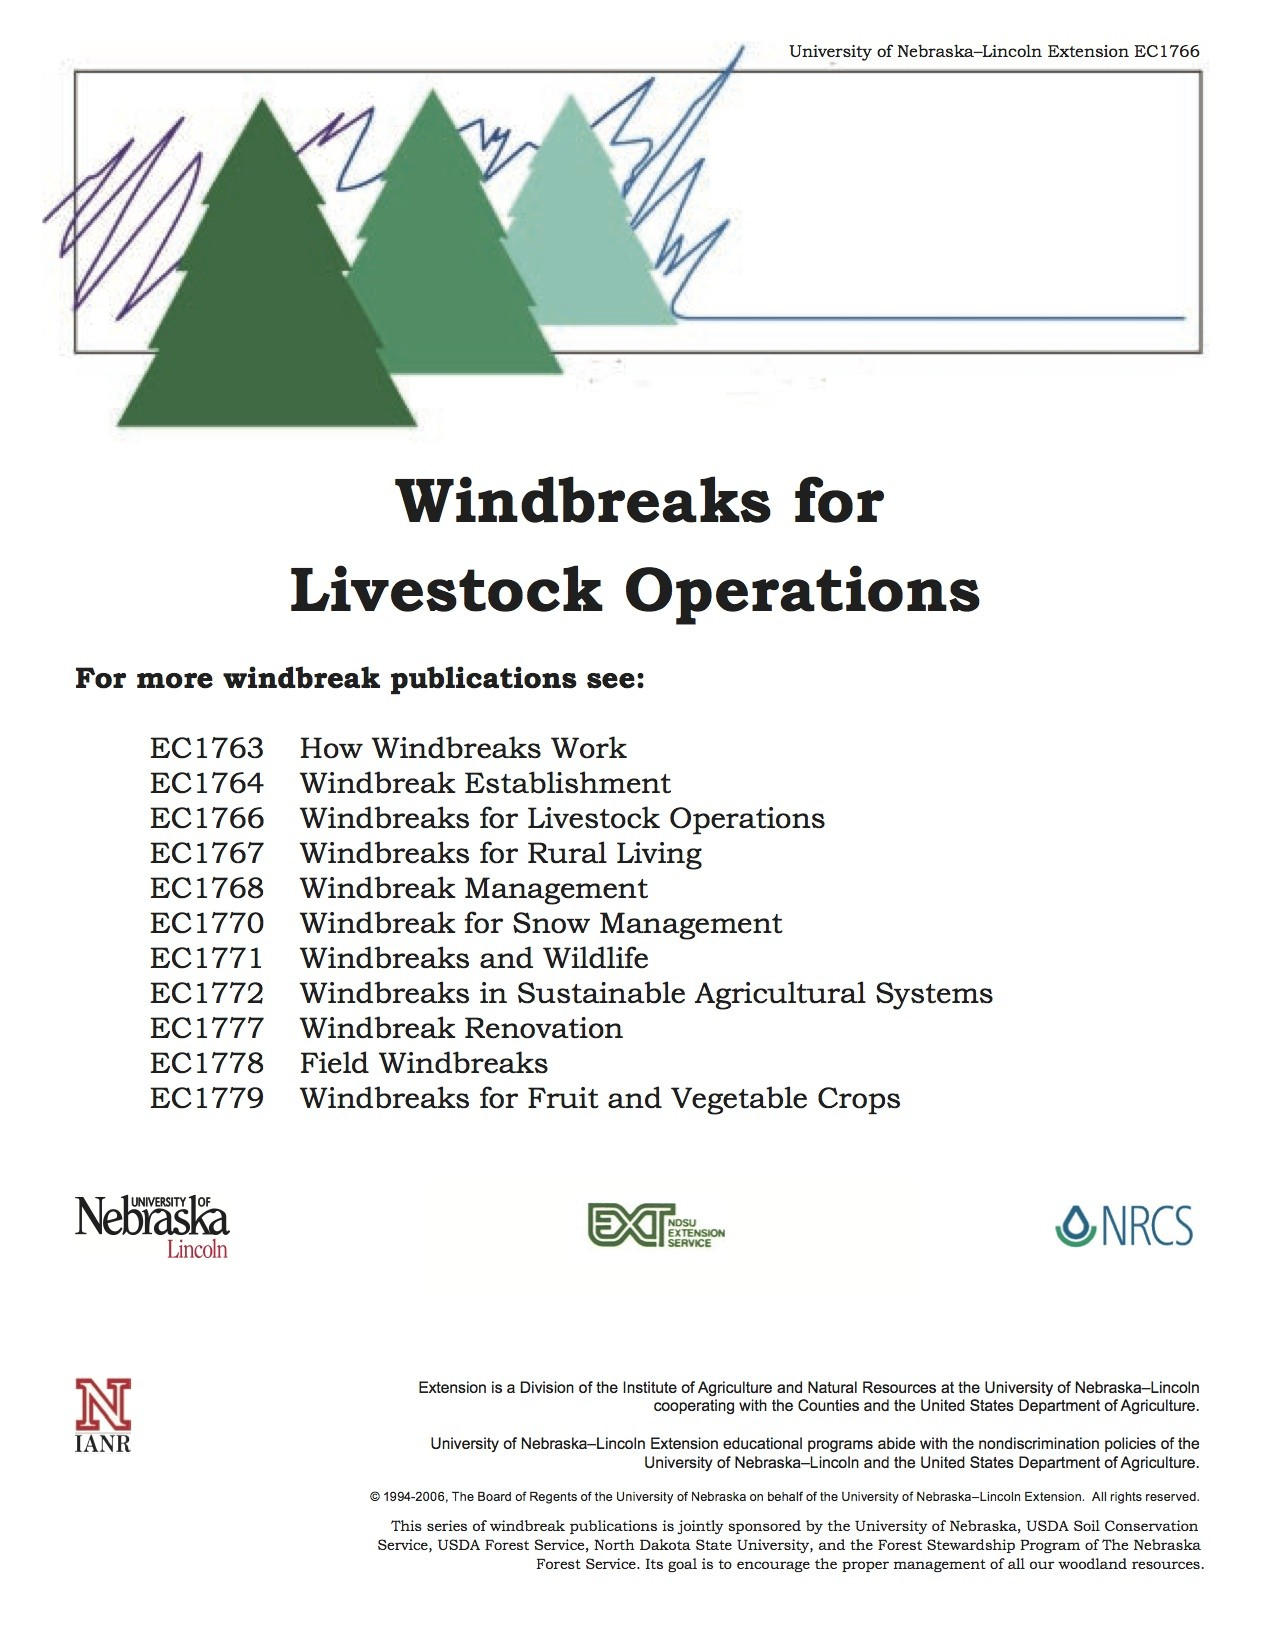 Windbreaks for Livestock Operations